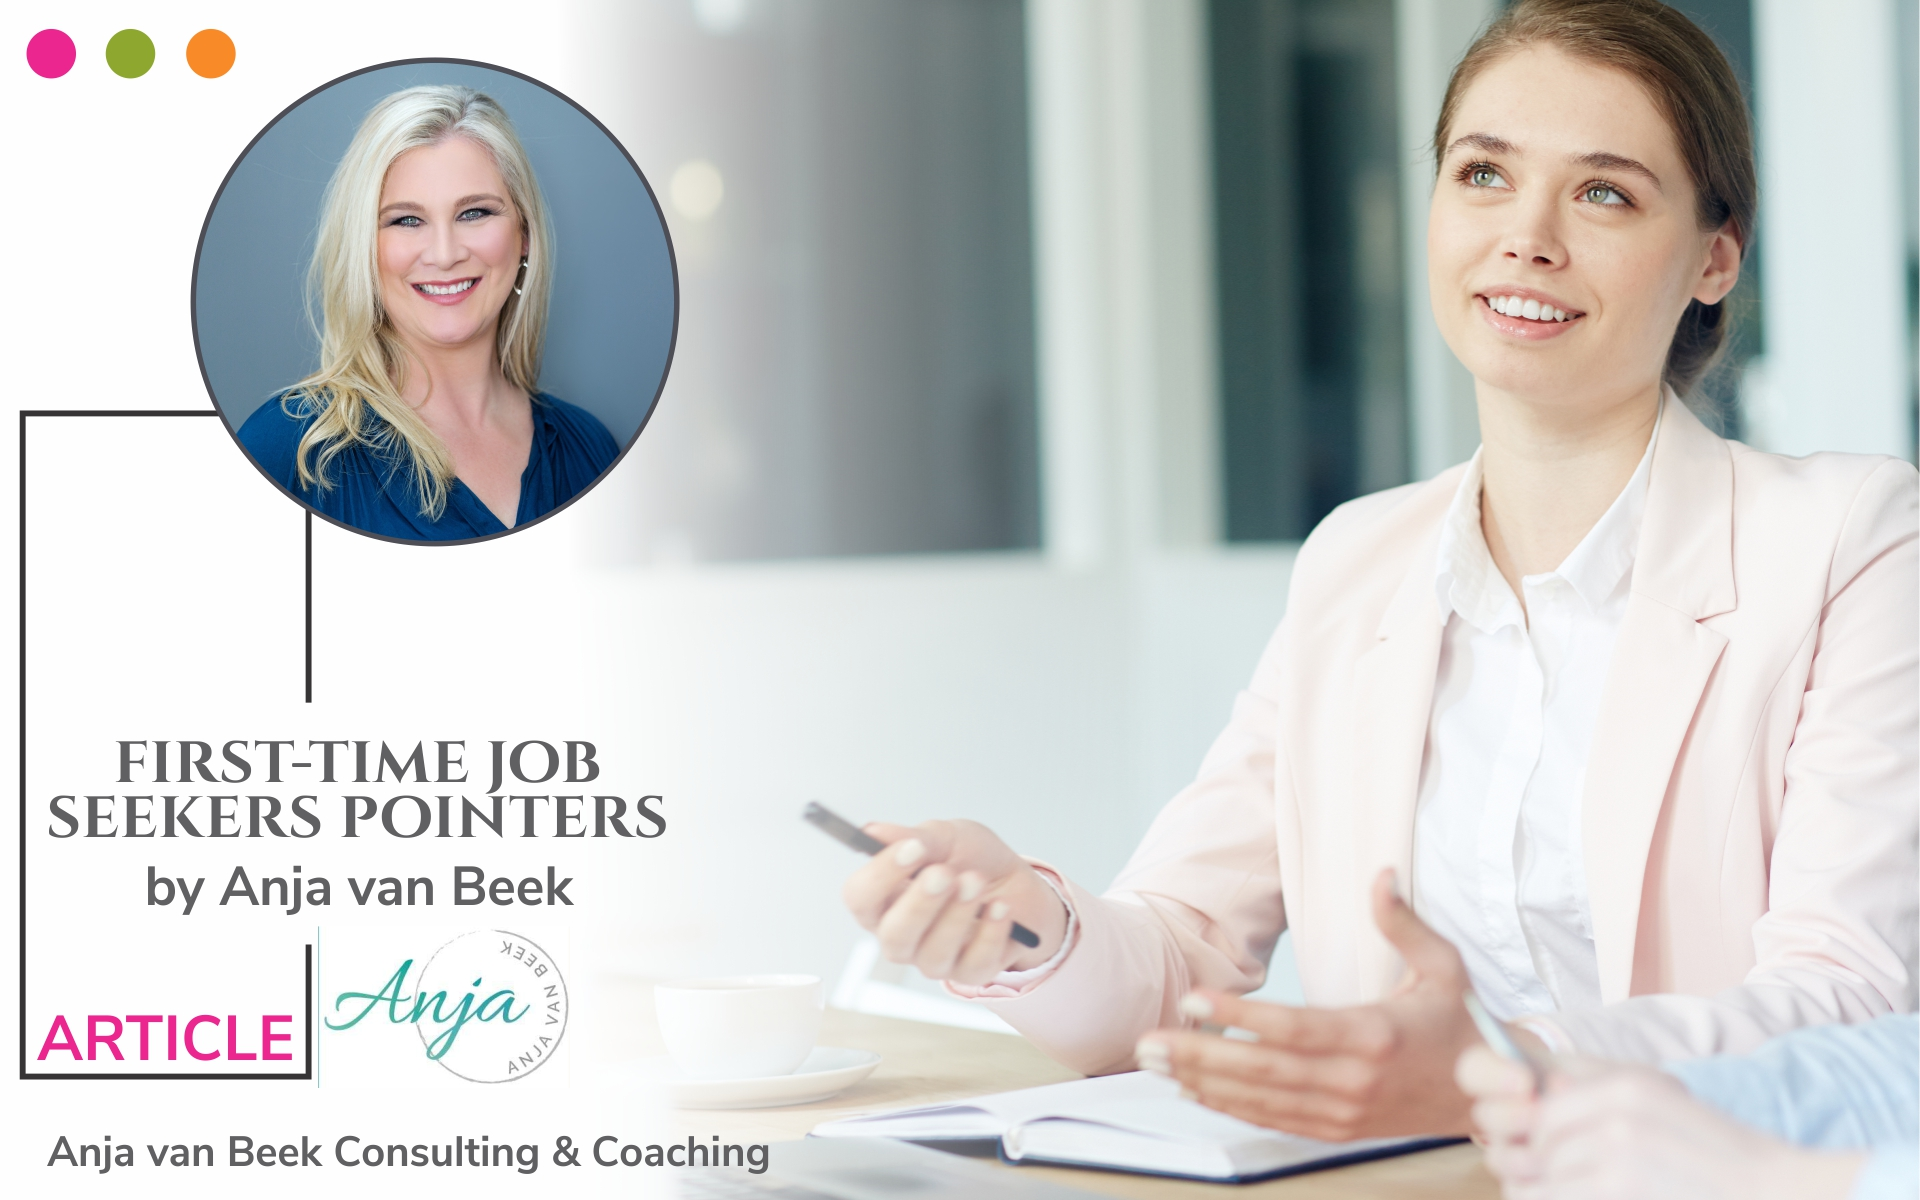 Article image for first-time job seekers